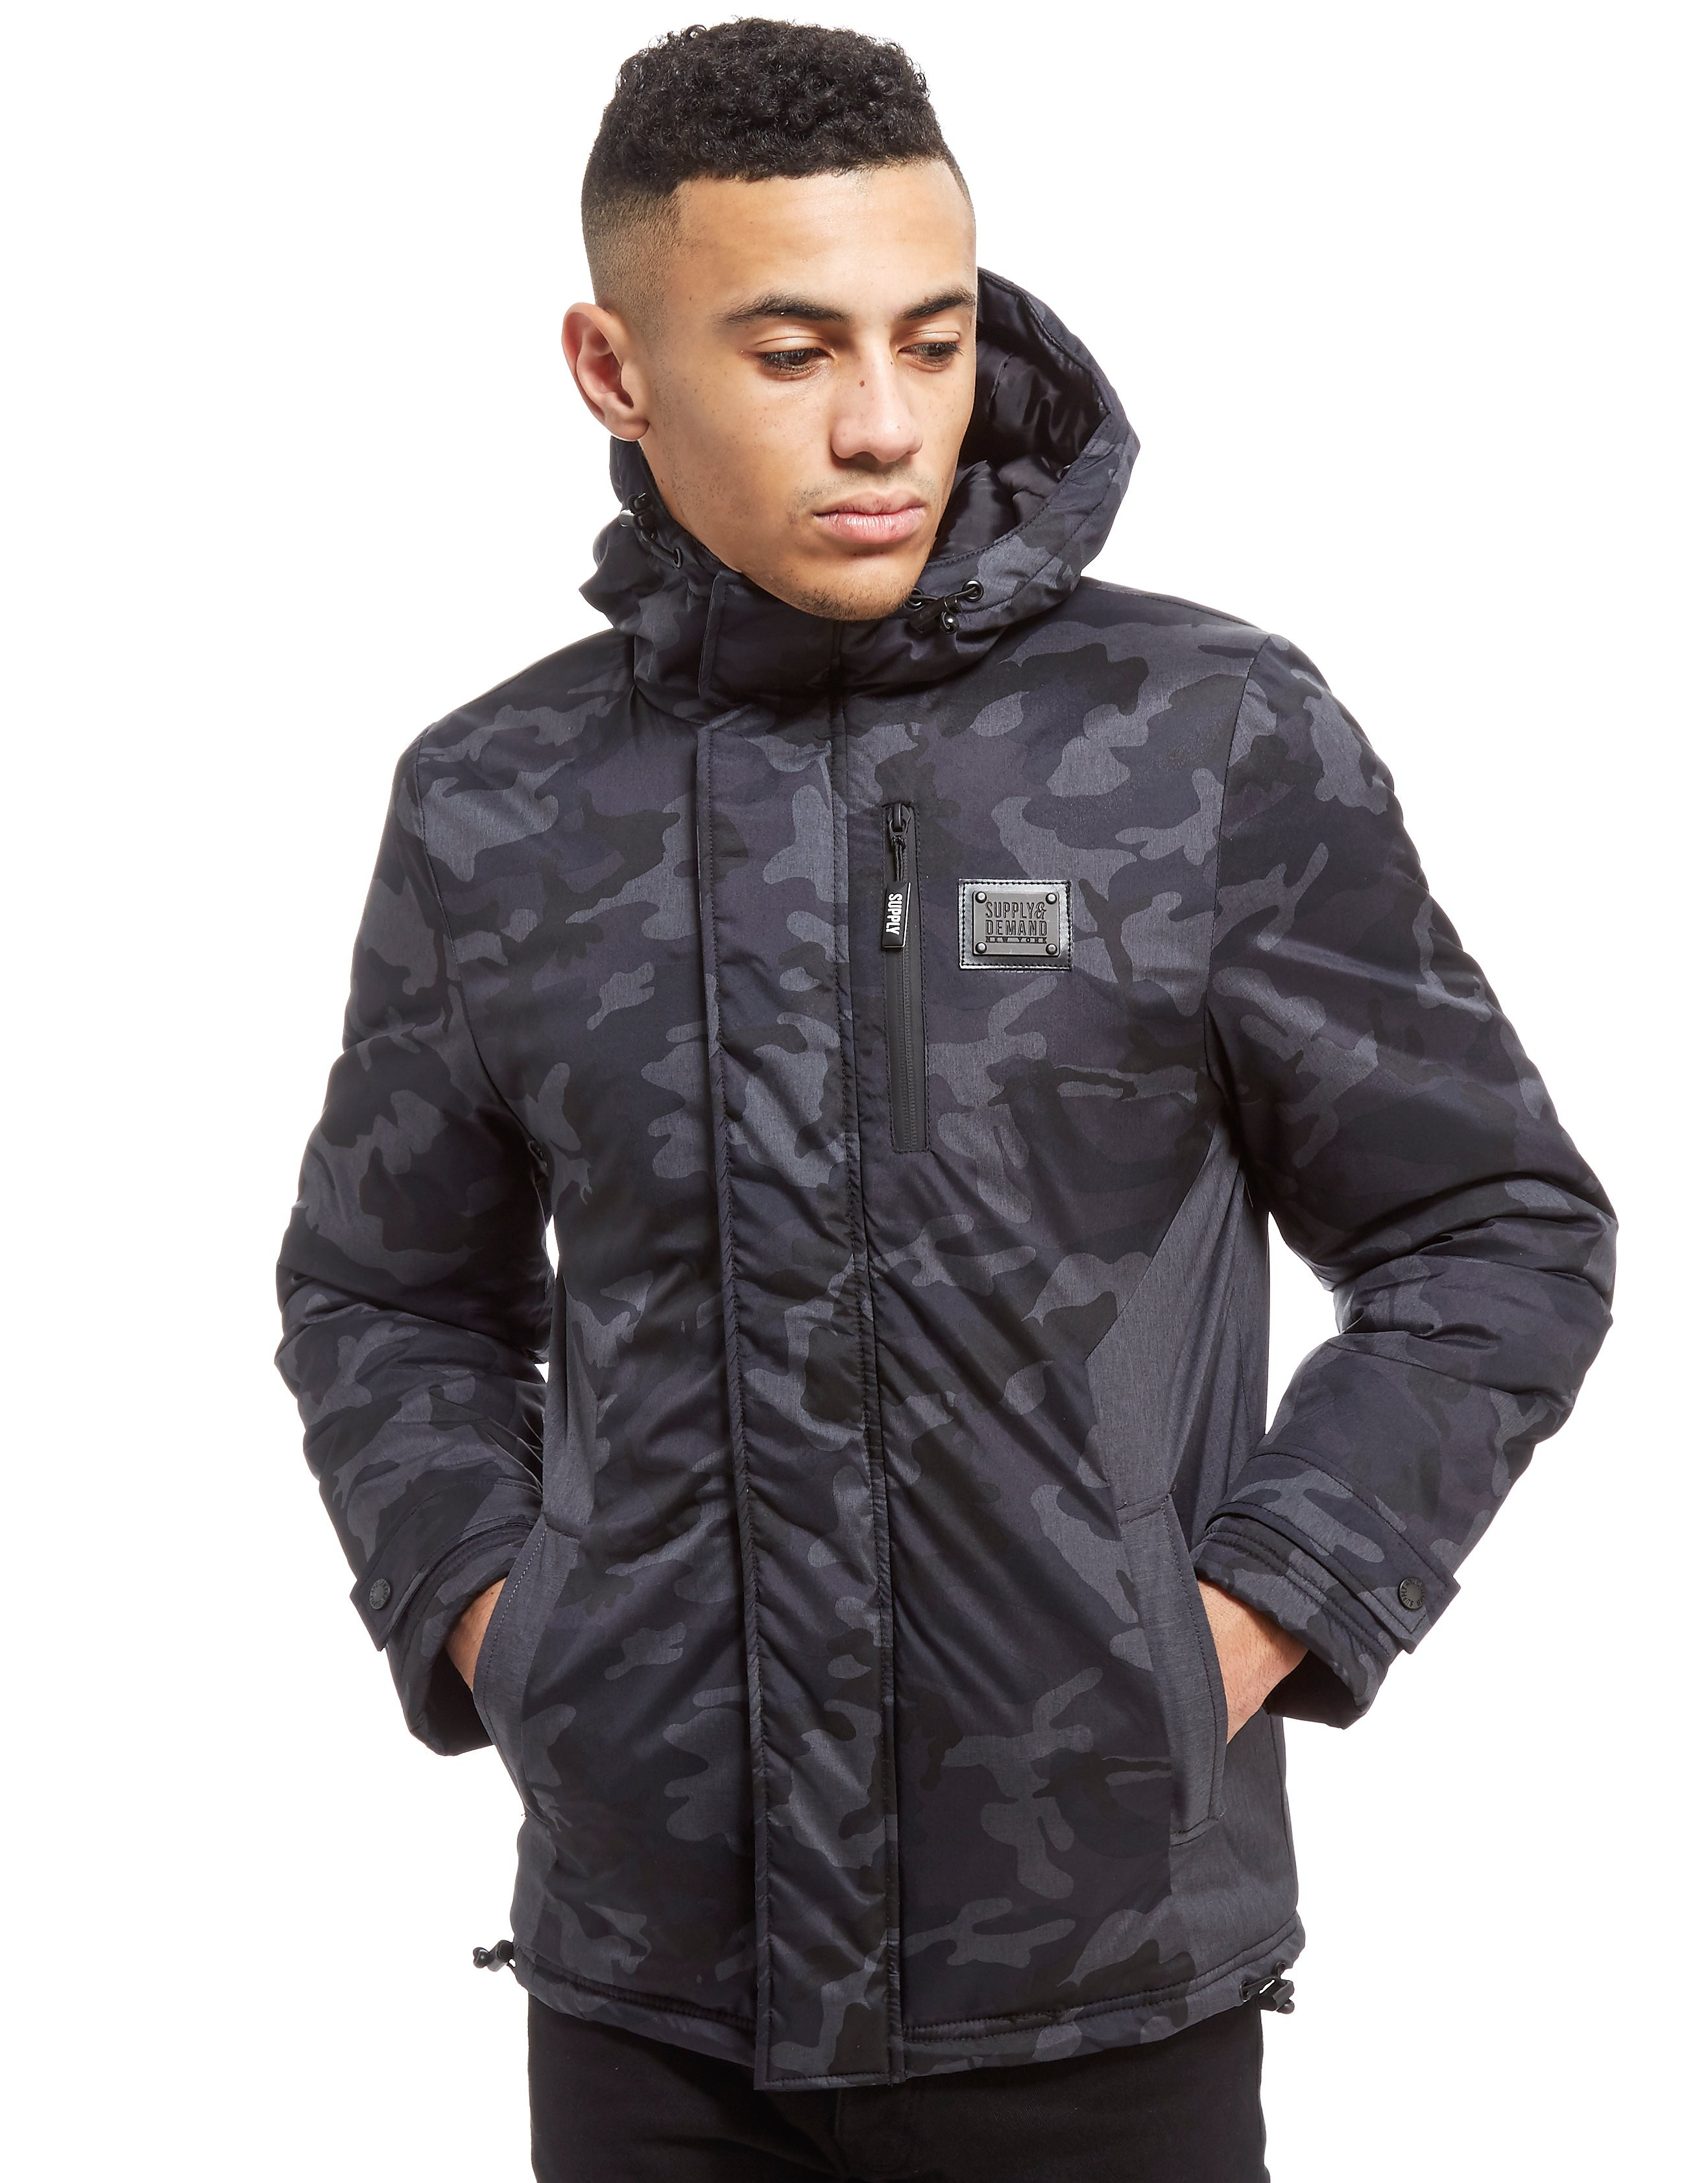 Supply & Demand Elmau Jacket